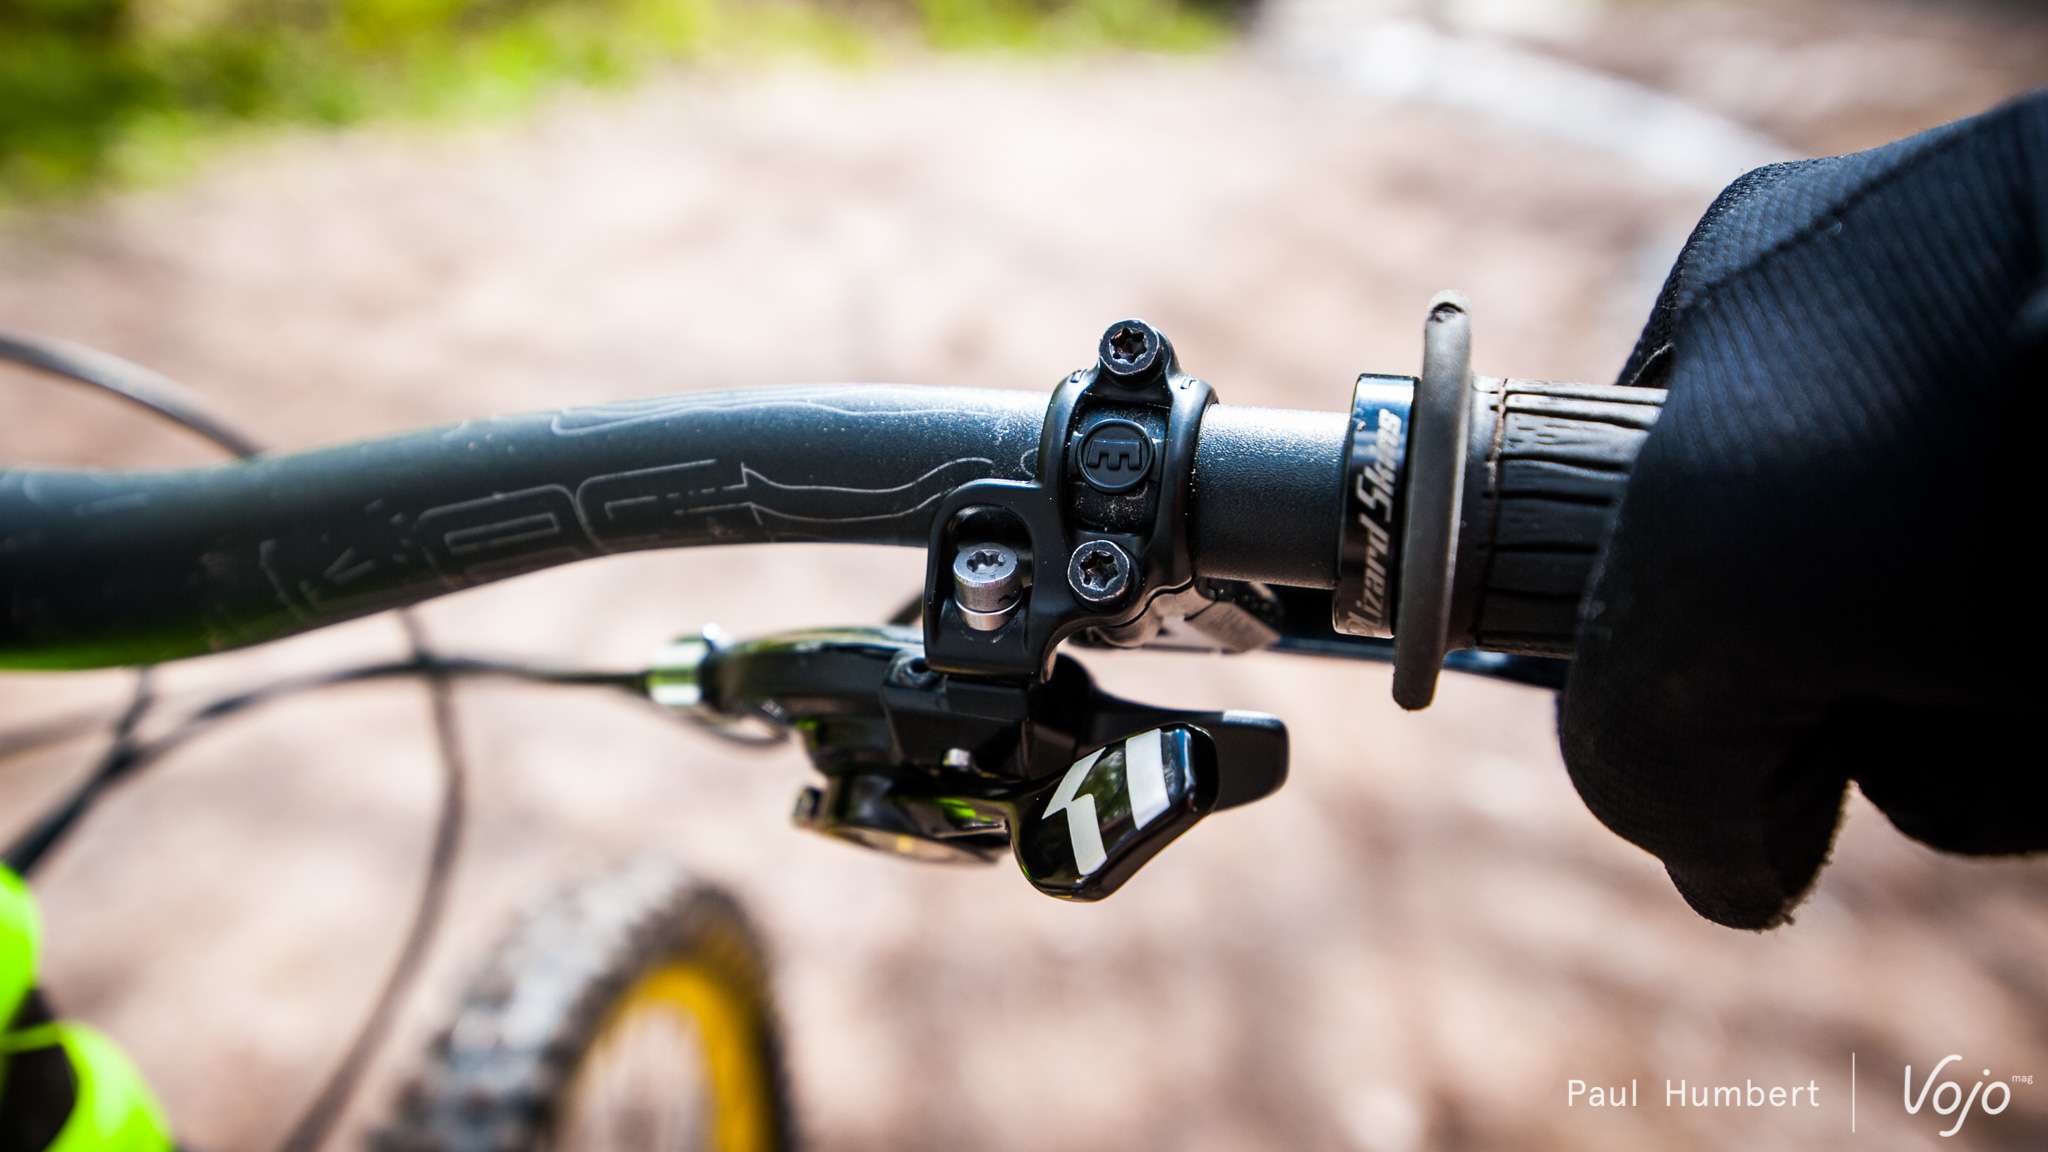 Magura-mt-trail-vojo-2016-paul-humbert-15